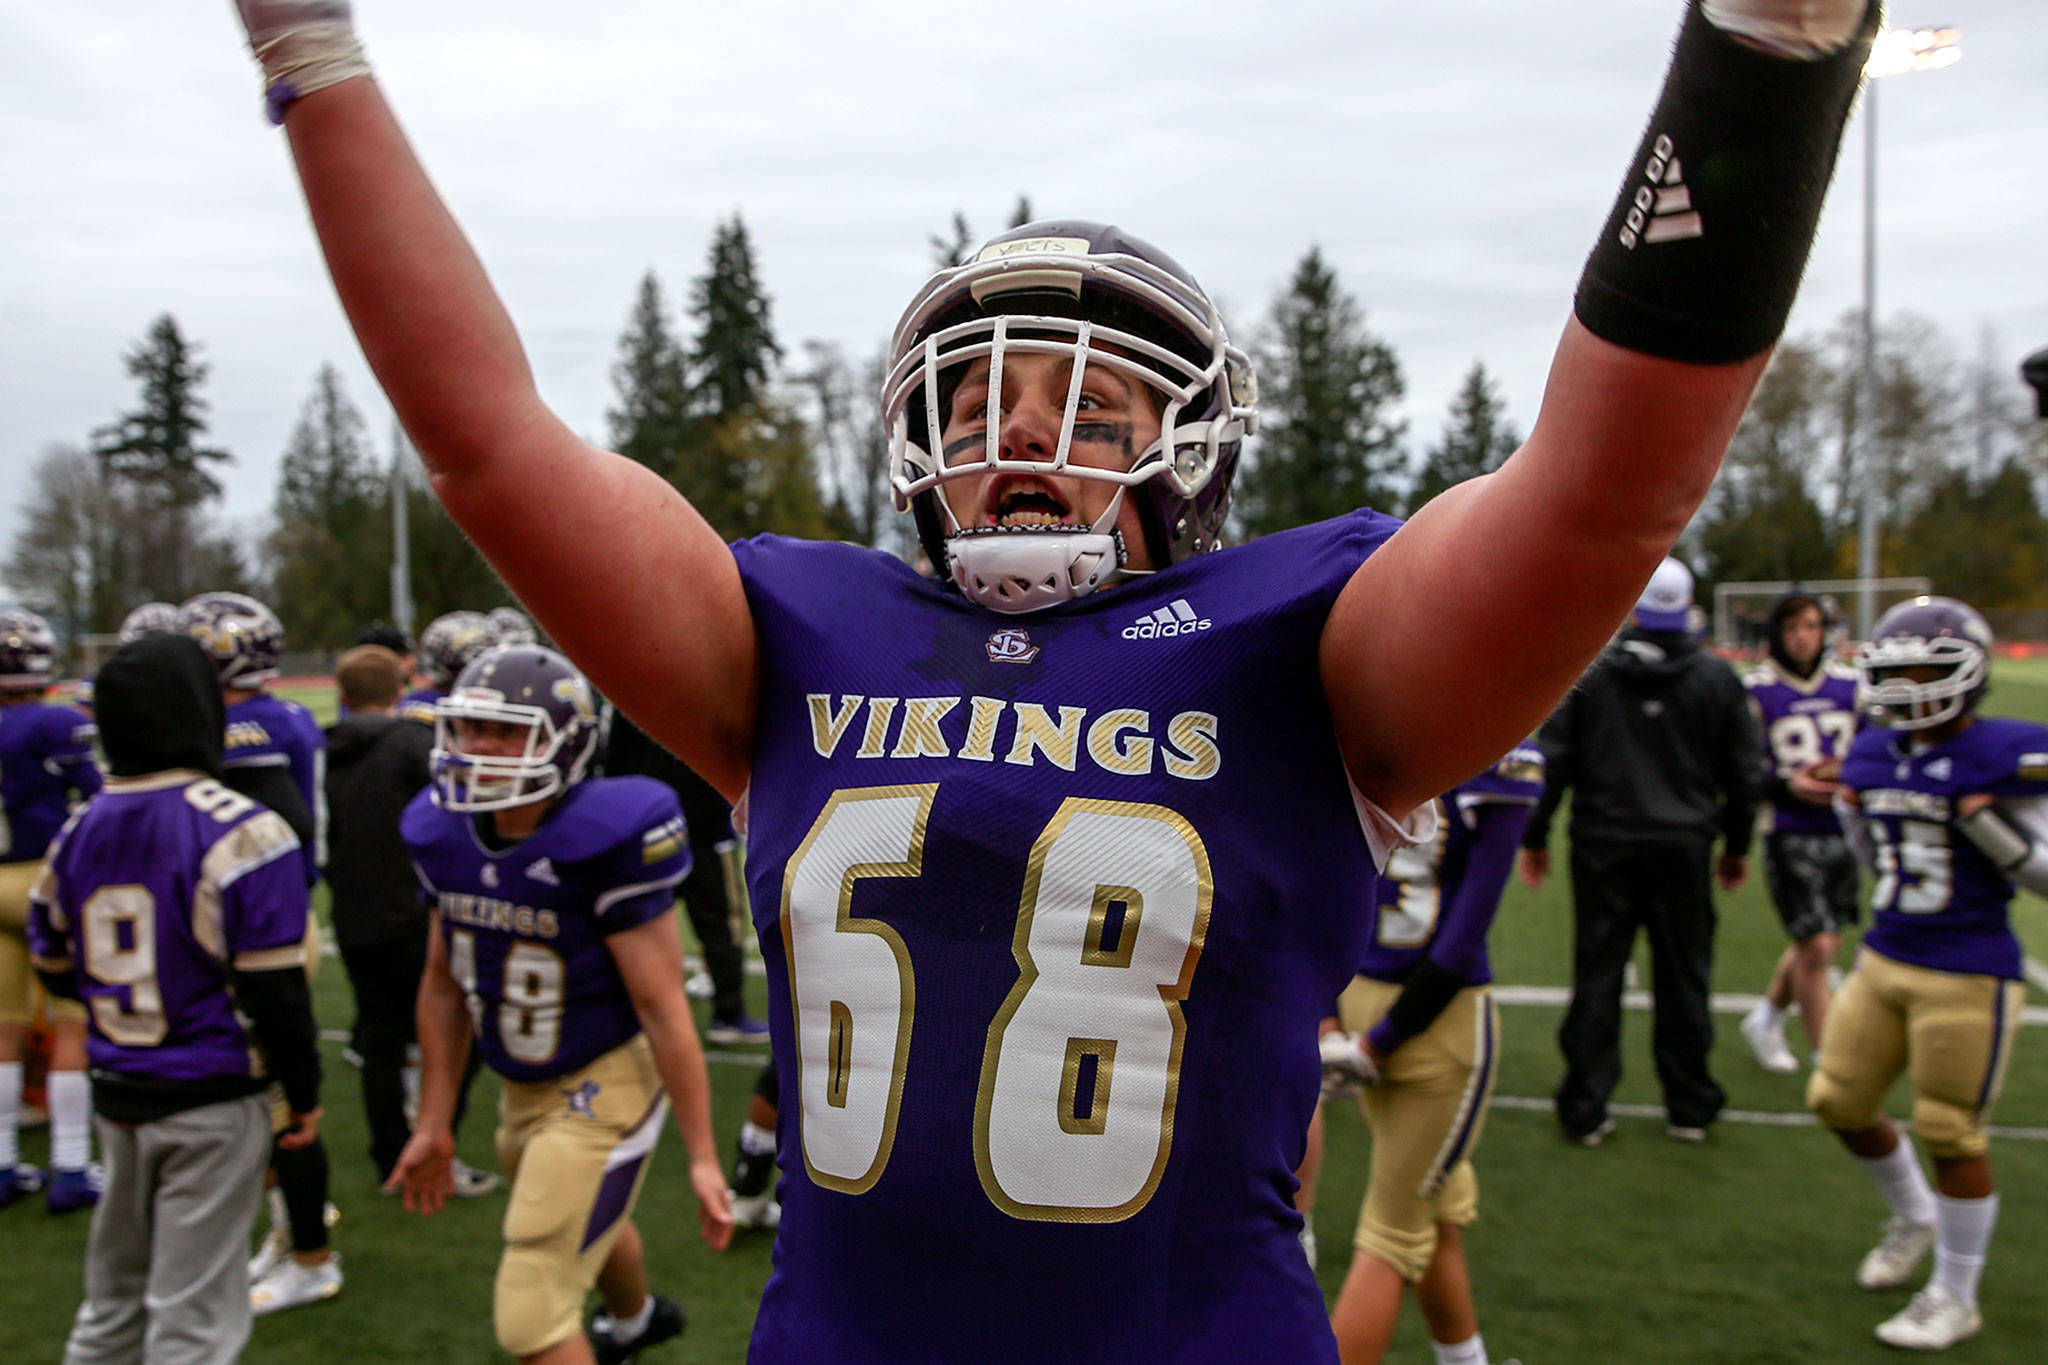 Lake Stevens standout left tackle Devin Kylany rallies the hometown crowd following the Vikings' first-round state-playoff win over Union last Saturday. It was the Washington State commit's first game back since recovering from a torn ACL. (Kevin Clark / The Herald)